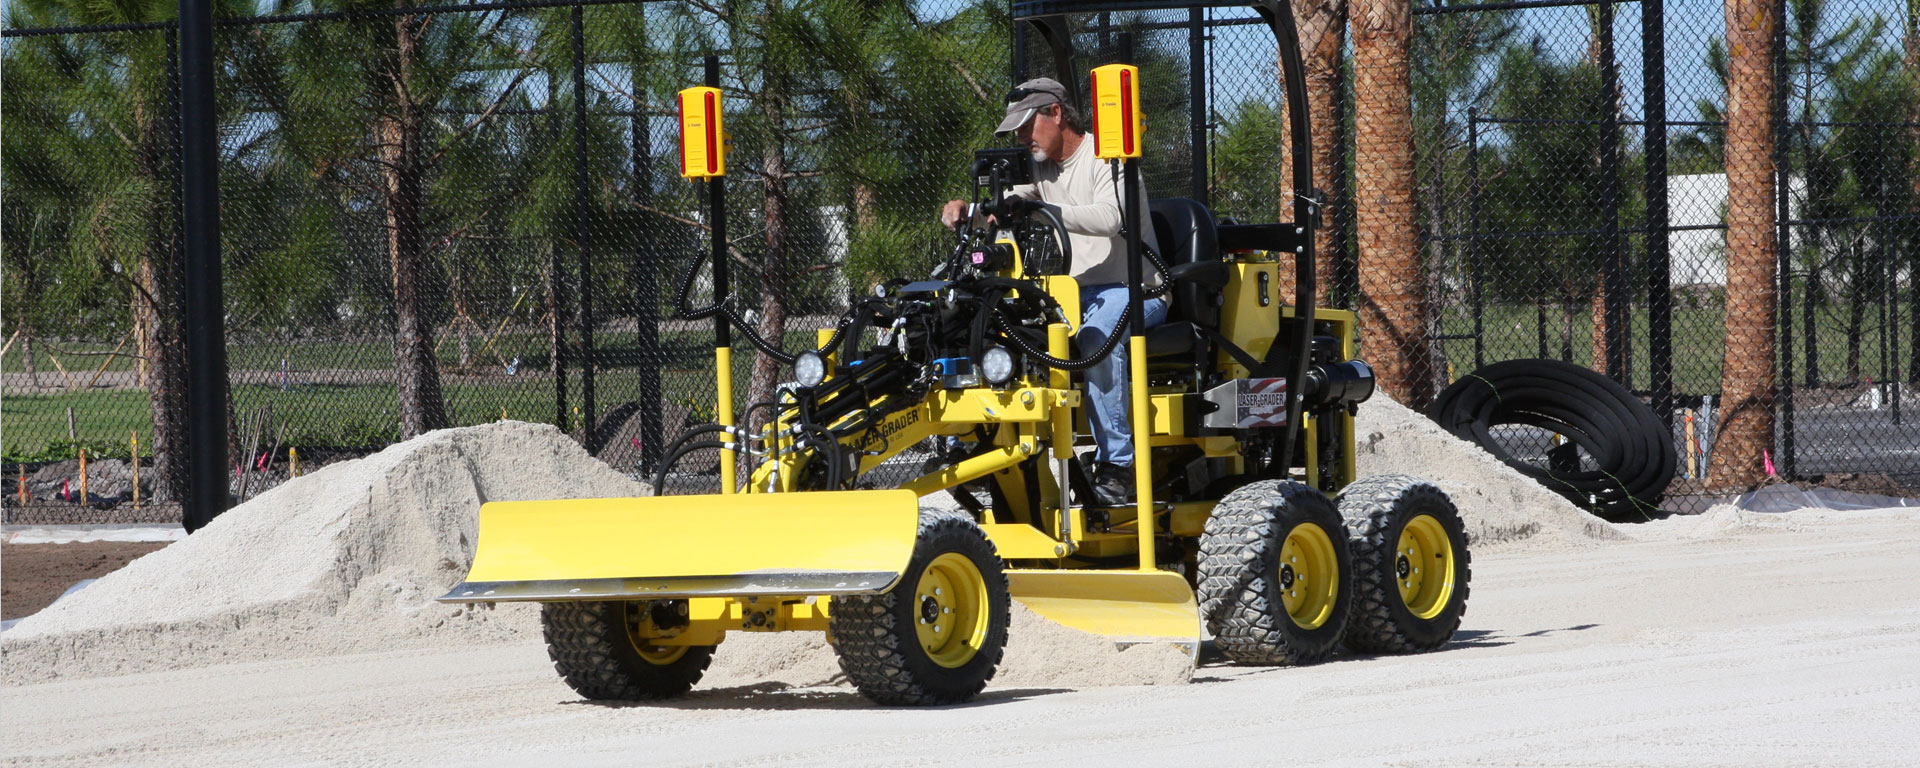 Laser-Grader has a number of applications in construction